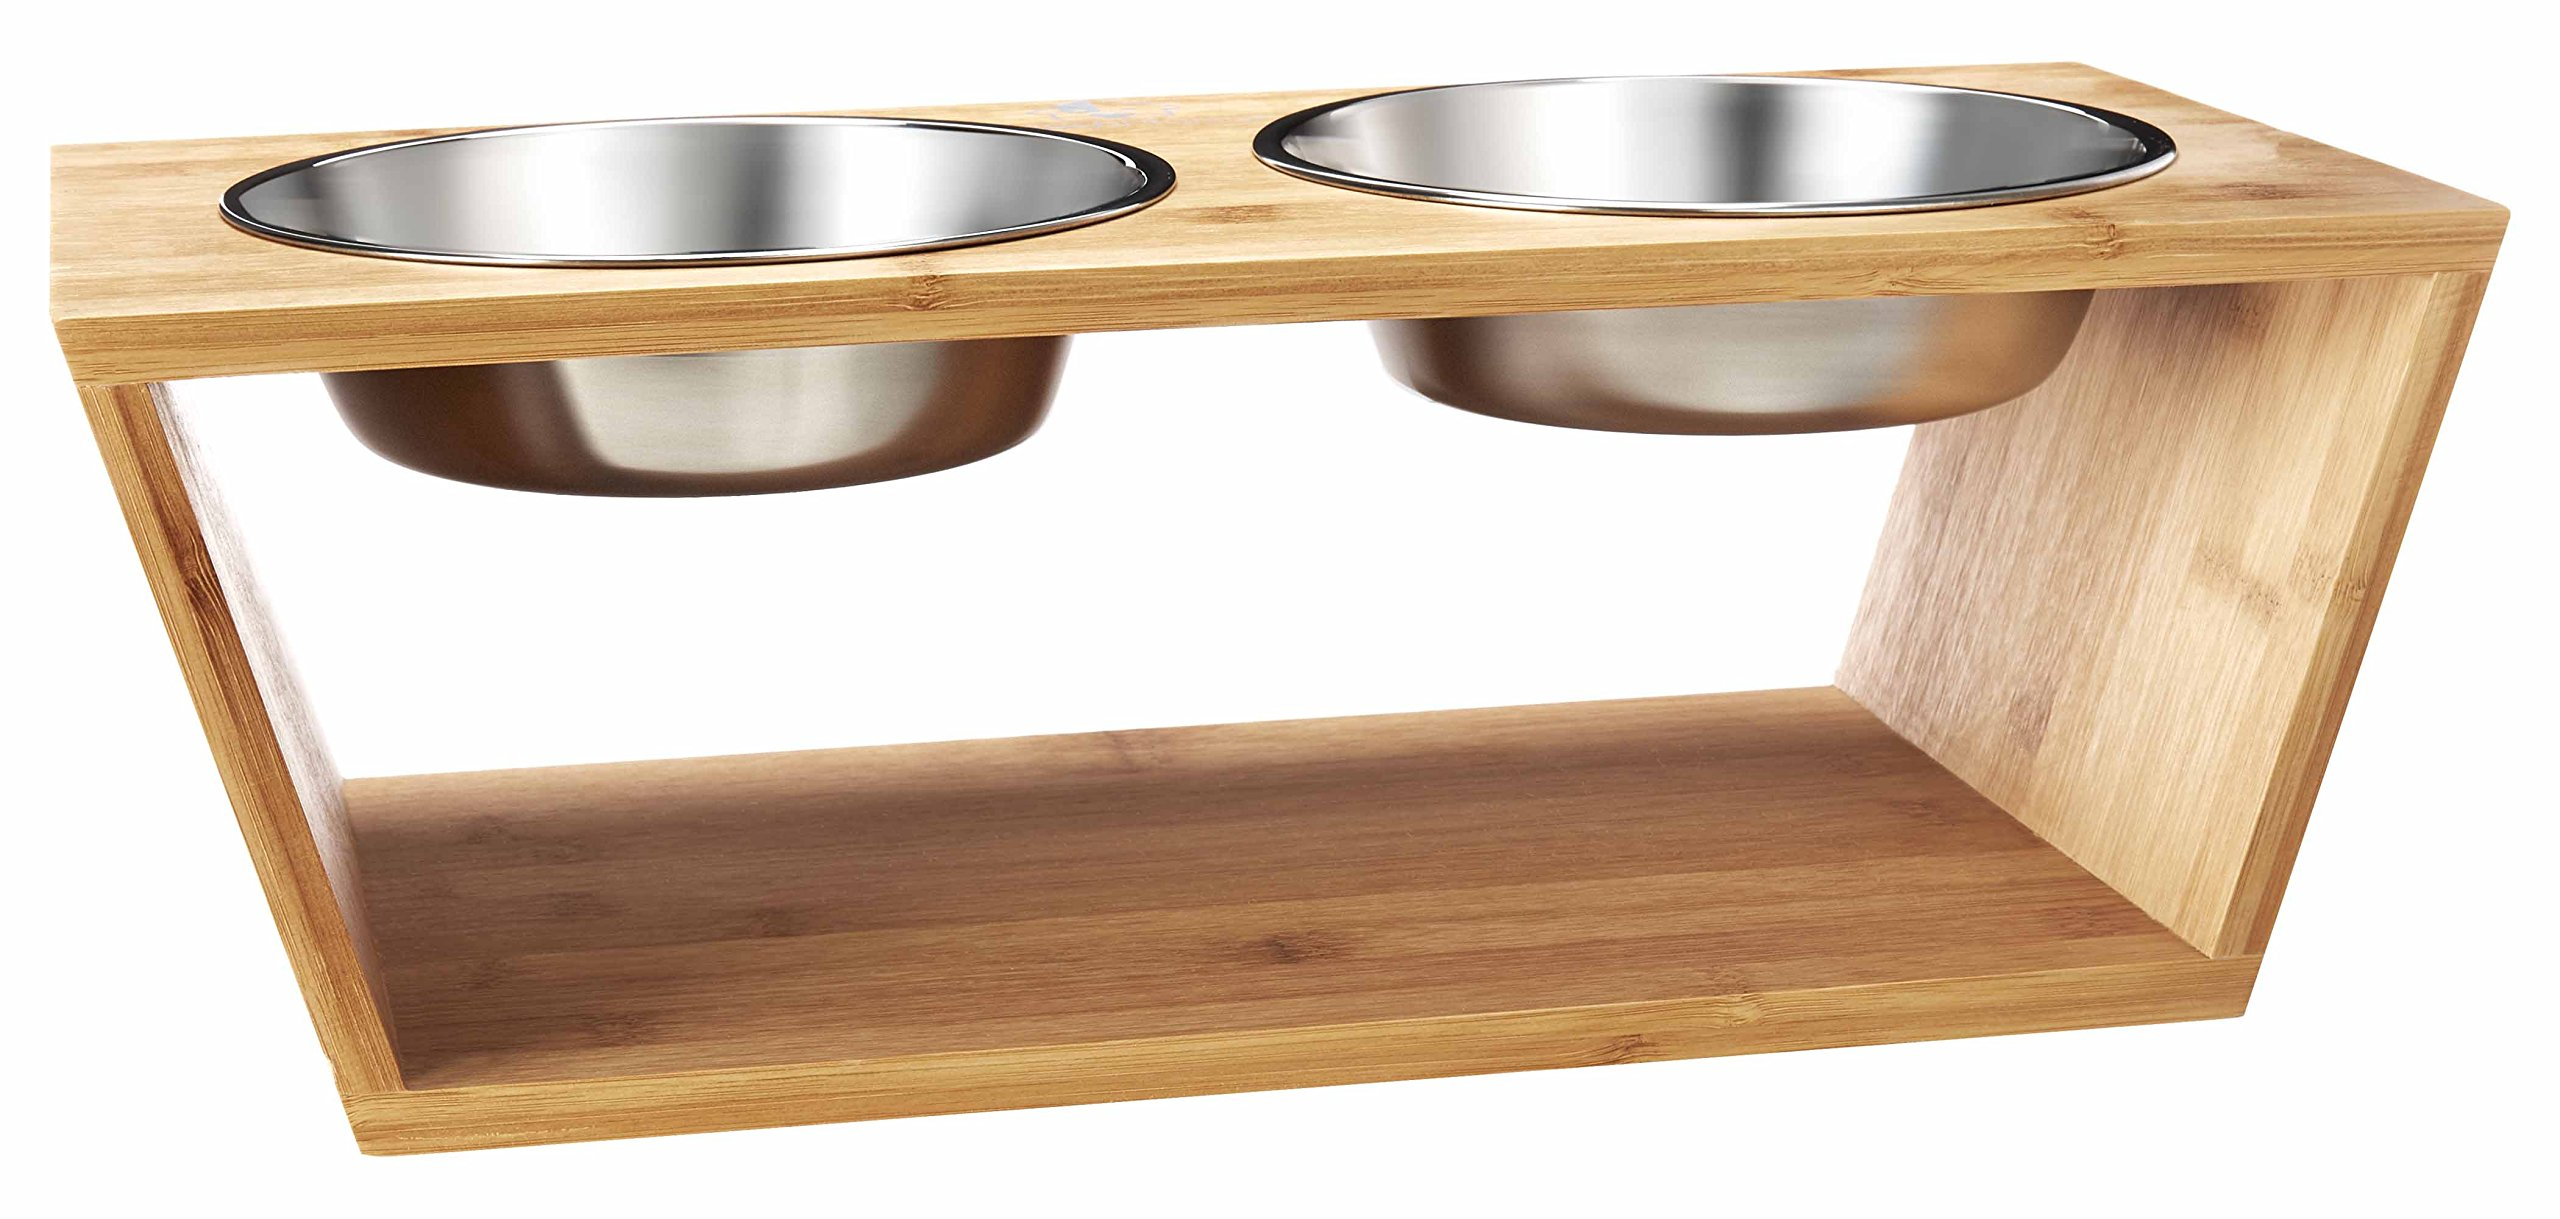 PoochMaison Premium Elevated Double Raised Bowl Stand, Pet Feeder with Two Stainless Steel Bowls. Great for Dogs and Cats. (Medium, Natural)